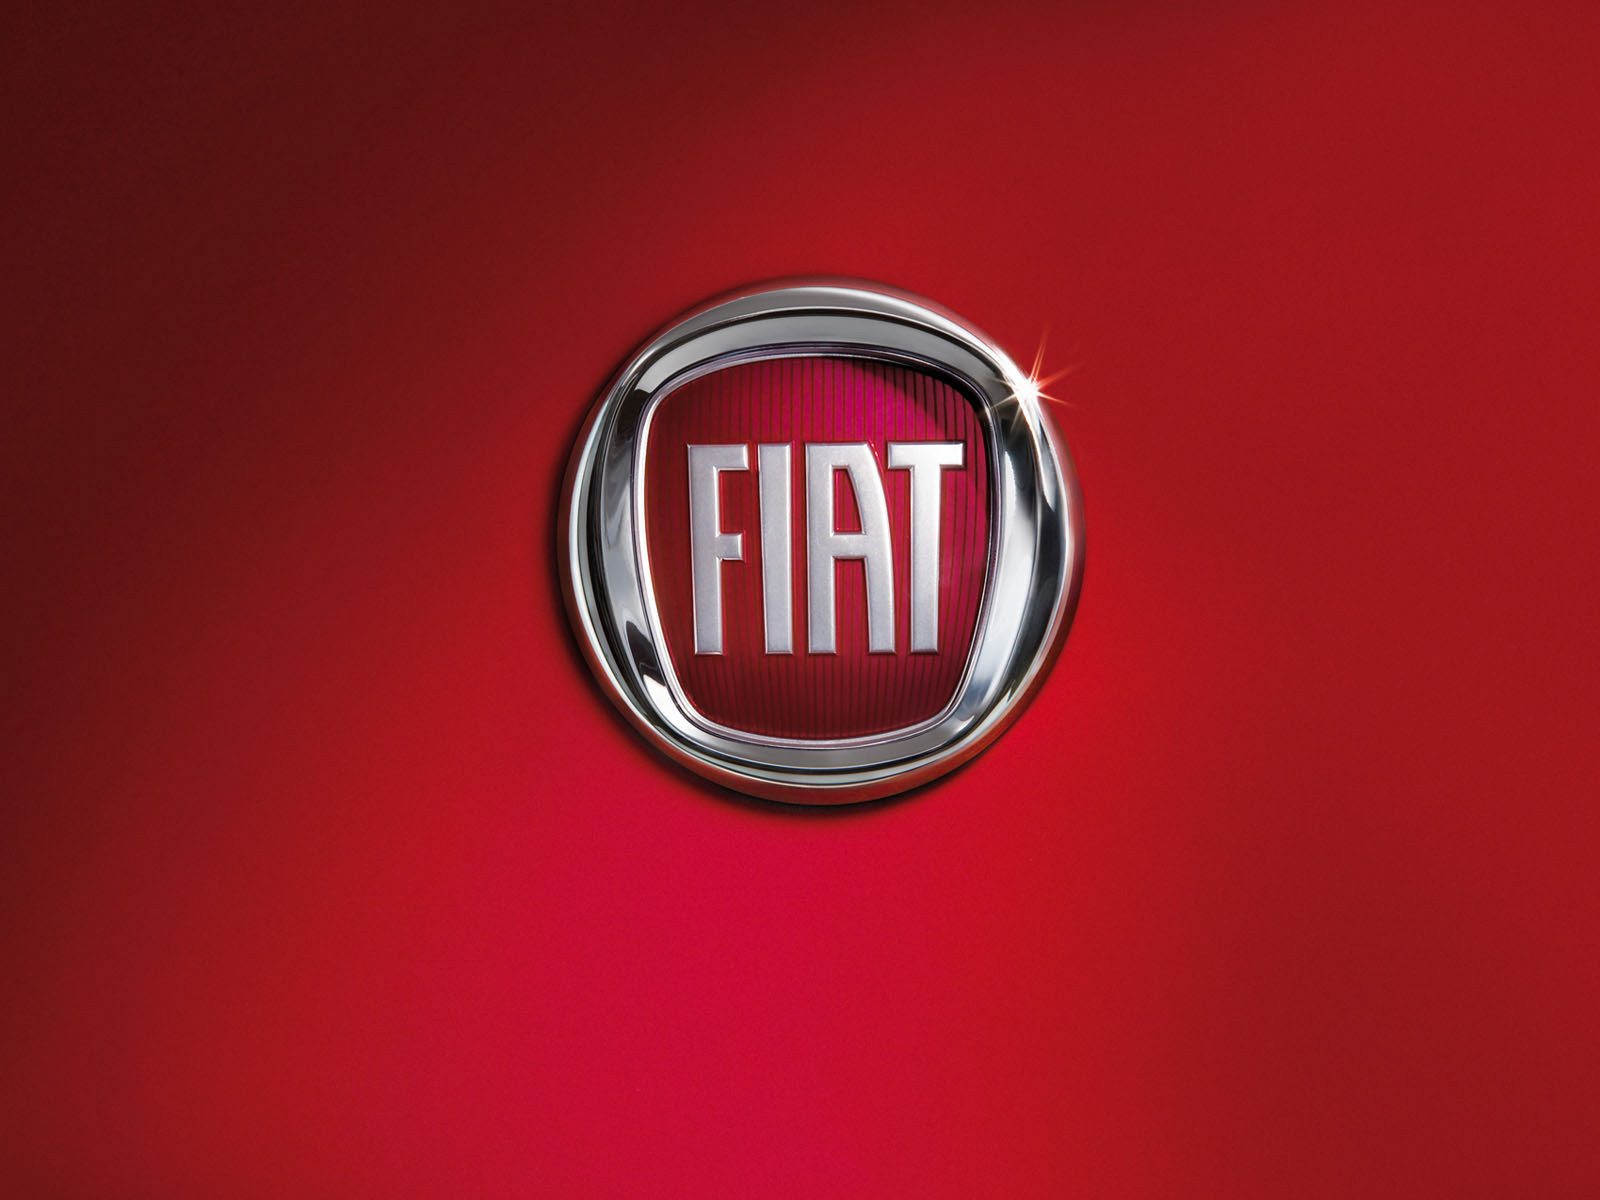 Fiat Logo Wallpaper